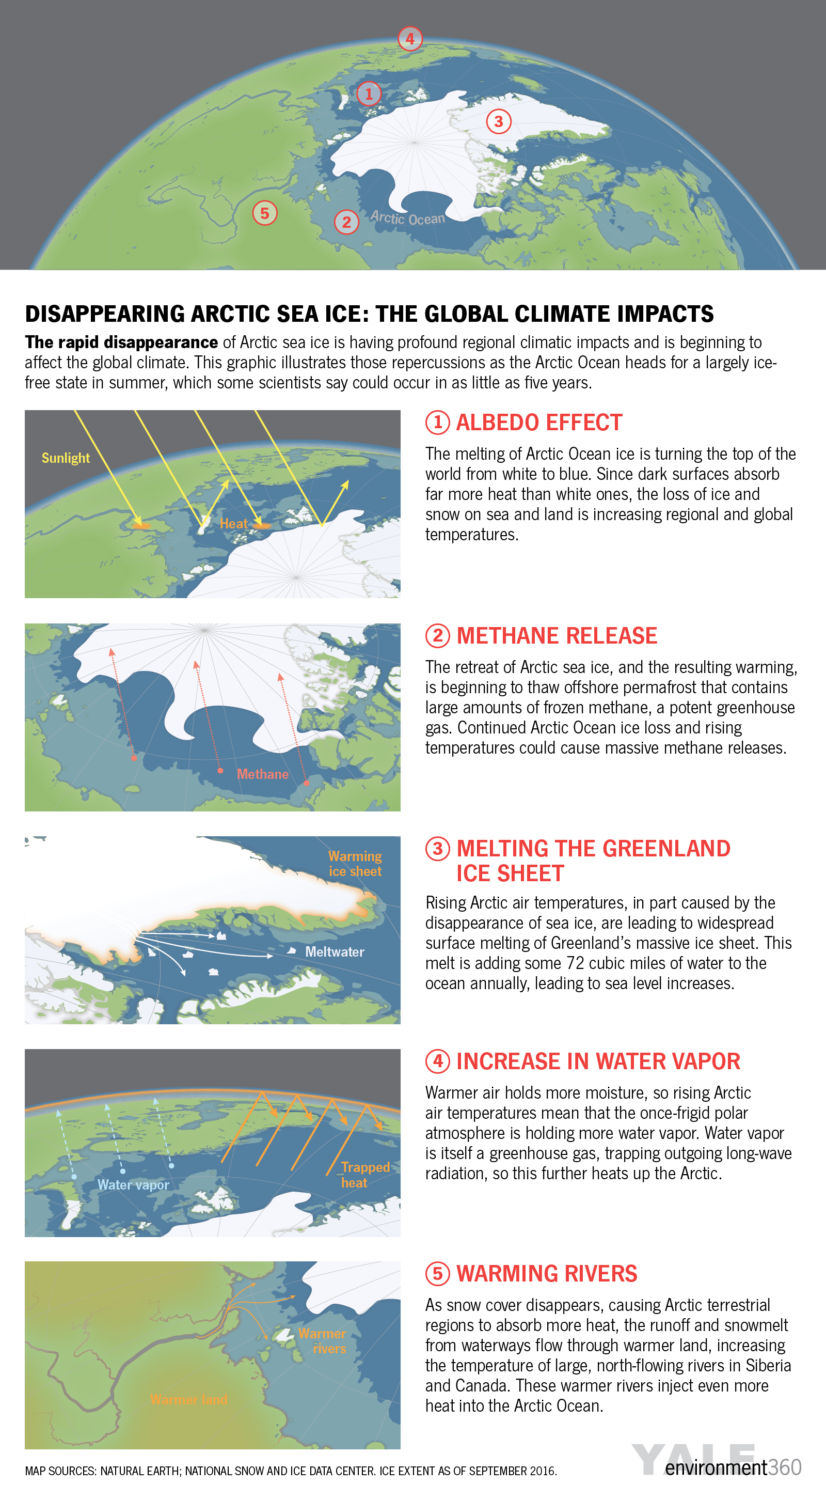 The Global Impacts of Rapidly Disappearing Arctic Sea Ice - Yale E360